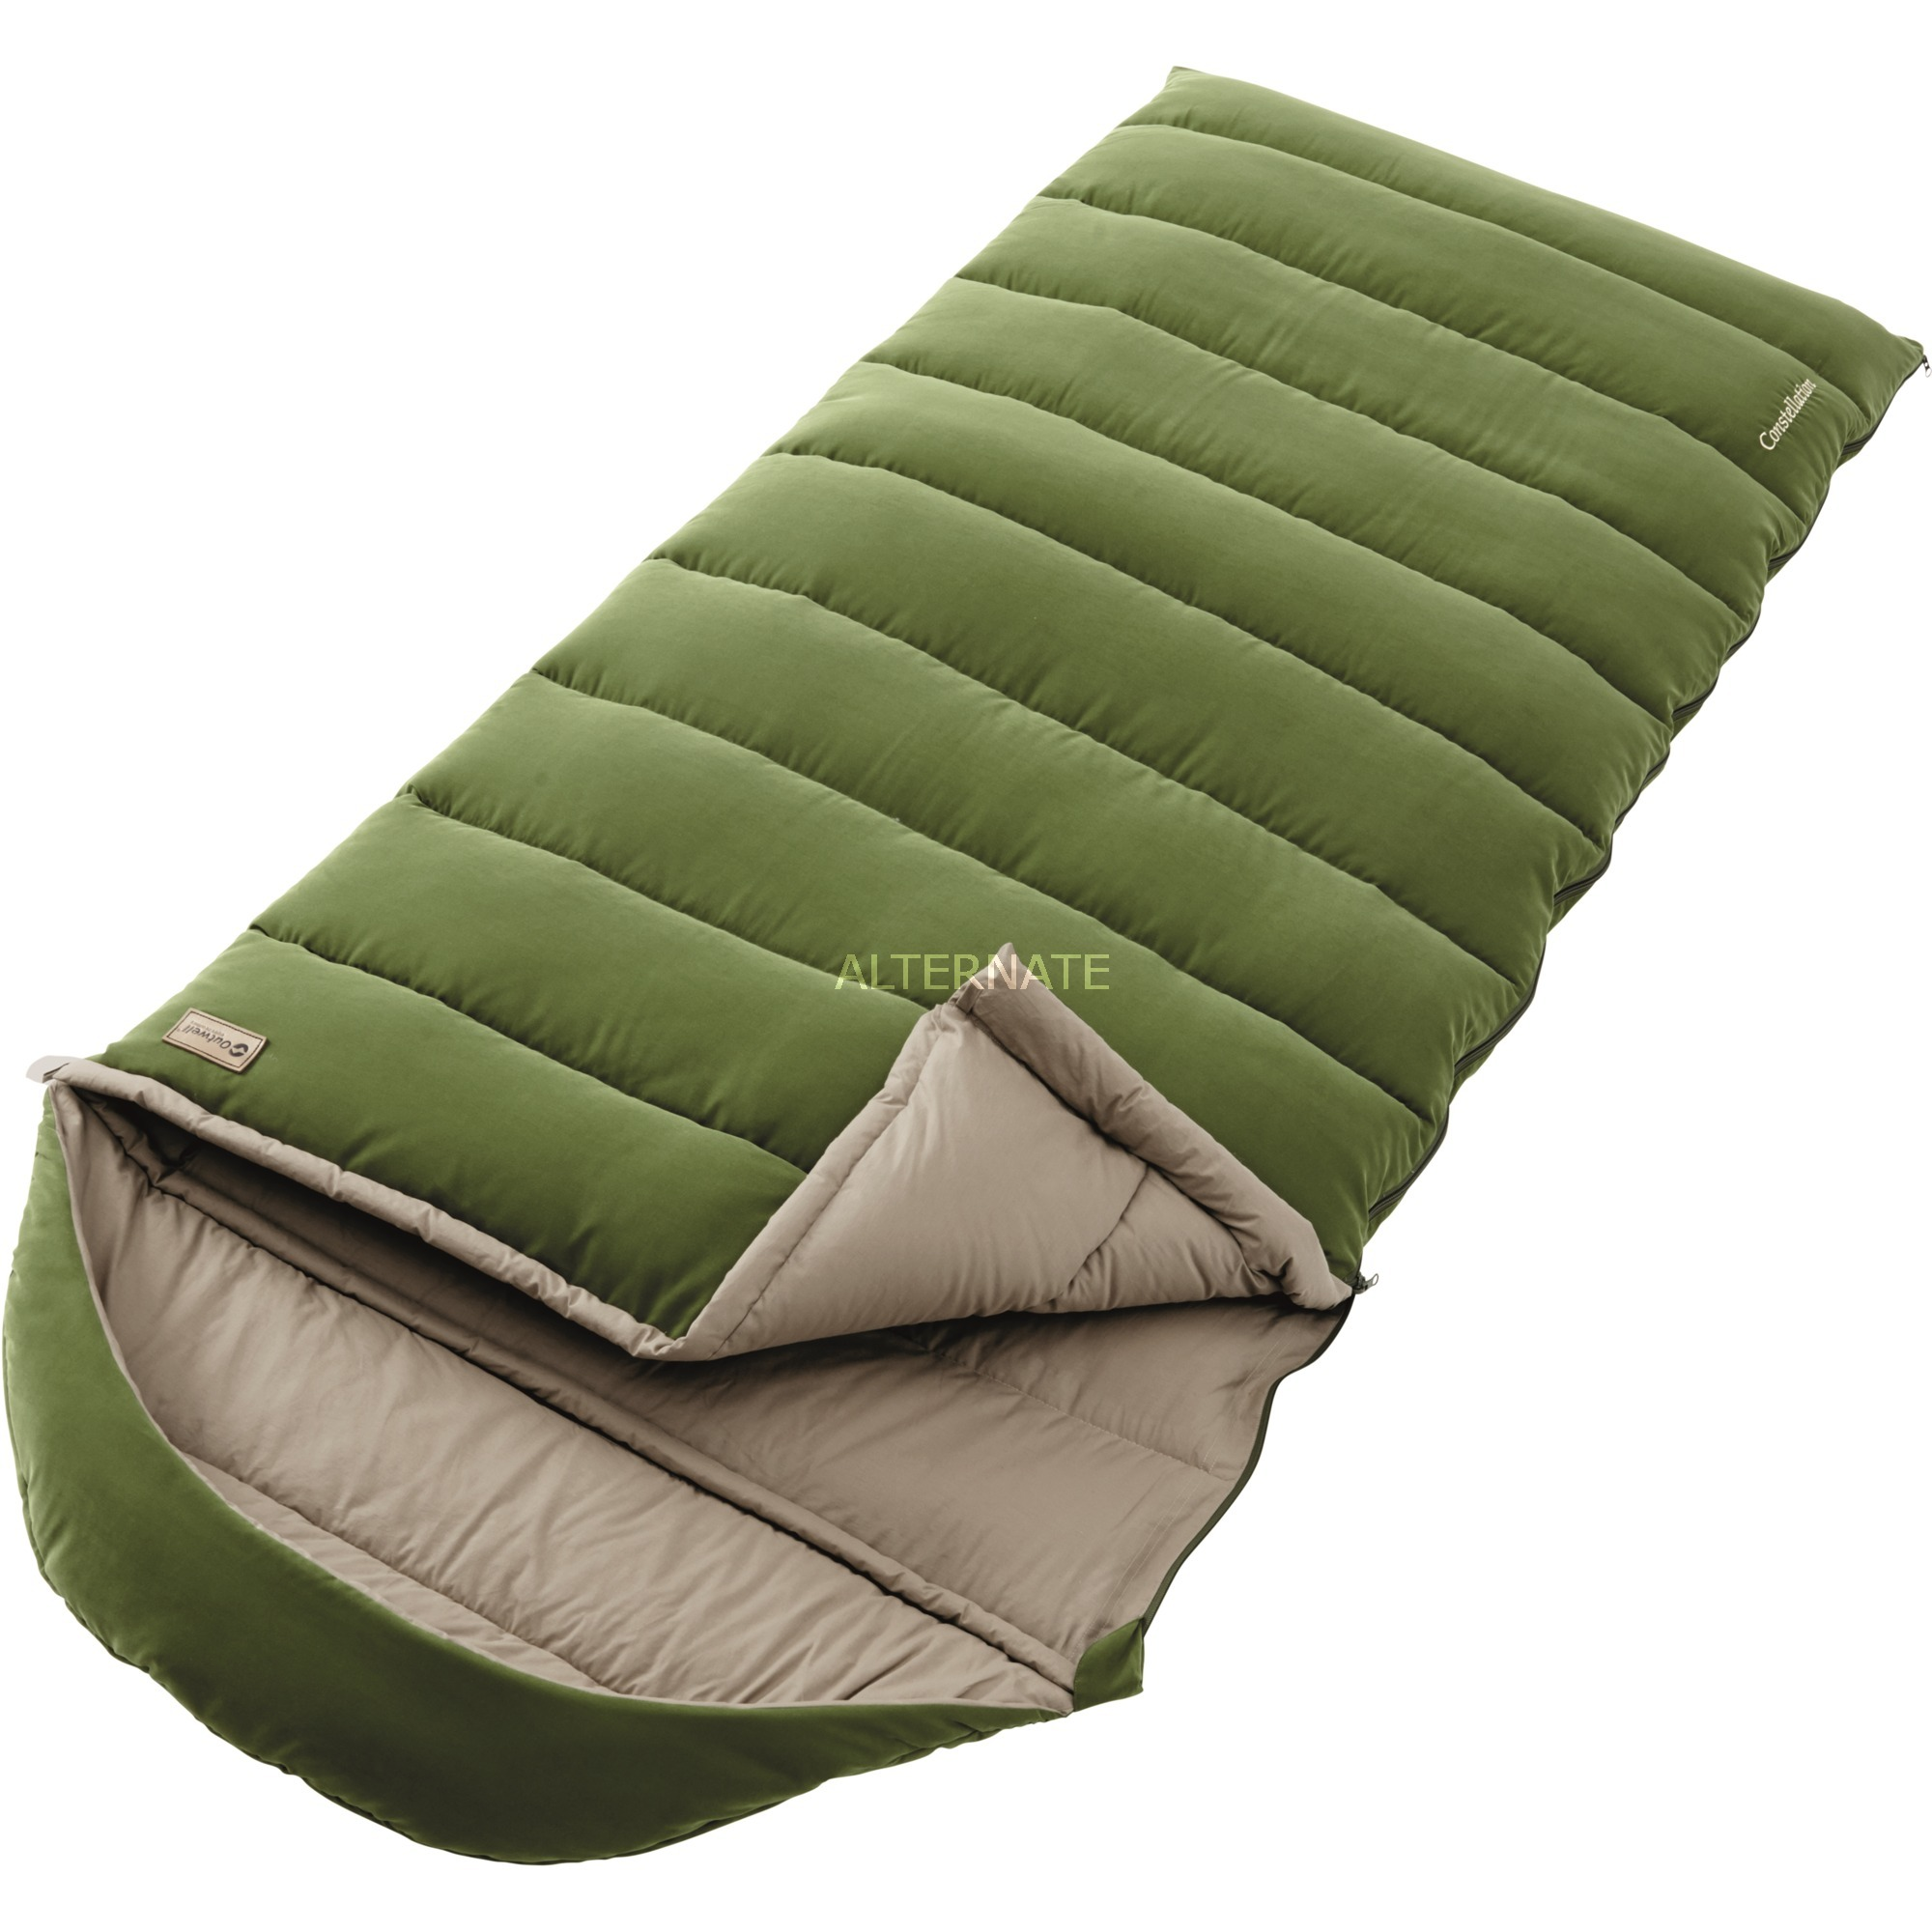 Constellation Rectangular sleeping bag Nylon, Polyester Vert, Sac de couchage